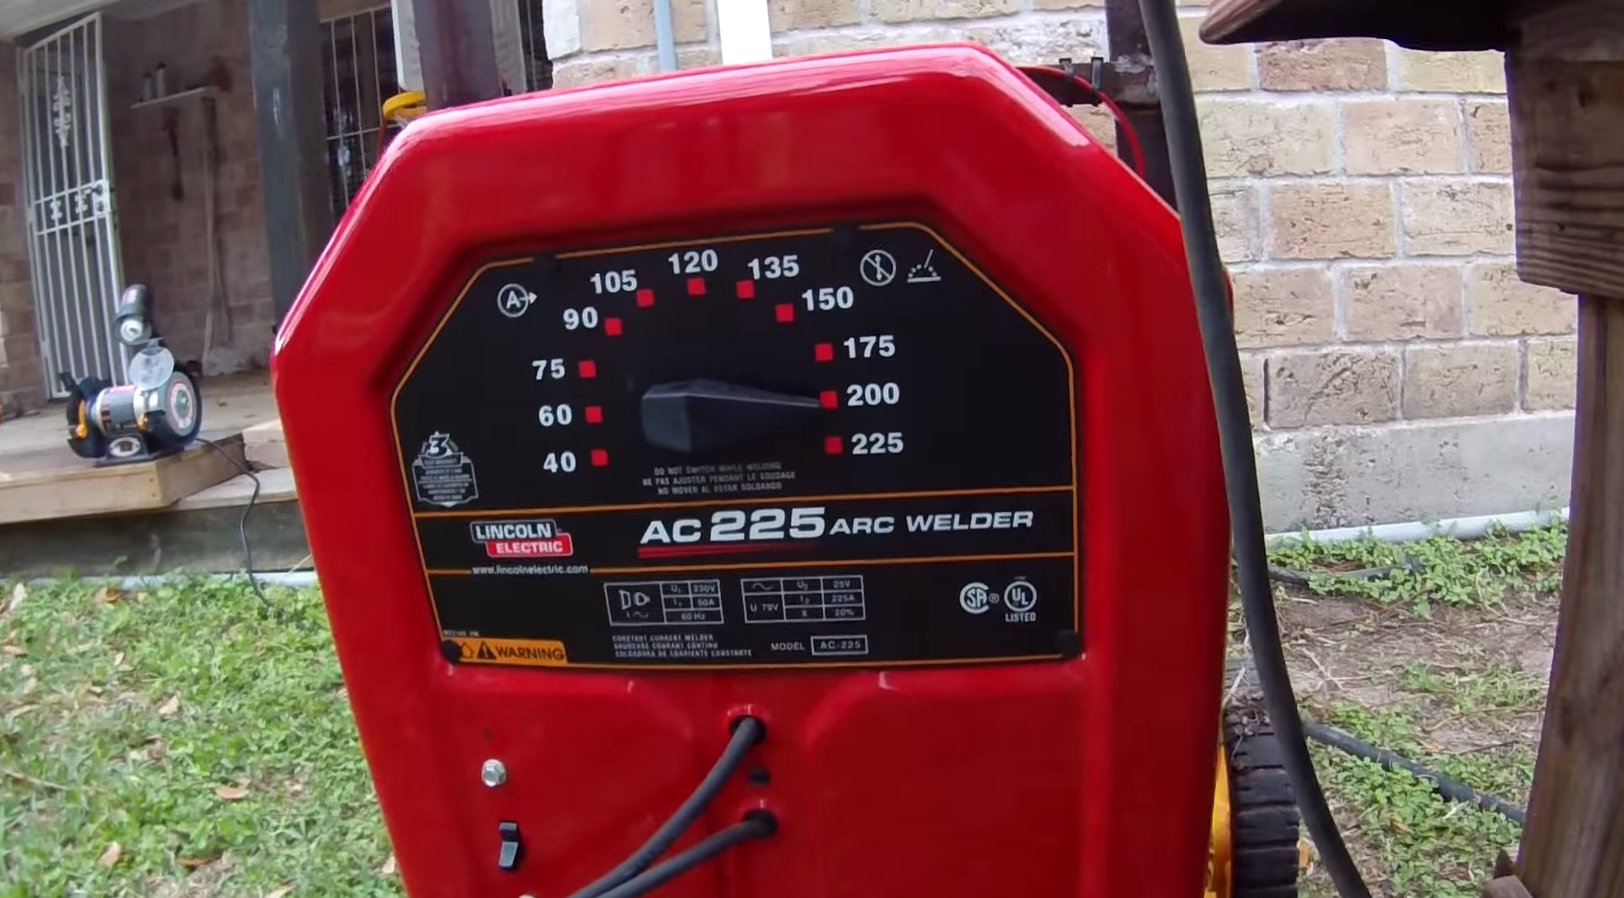 Used Arc Welders For Sale Buy Metal Welding Machine Lincoln Stick Welder Ac 225